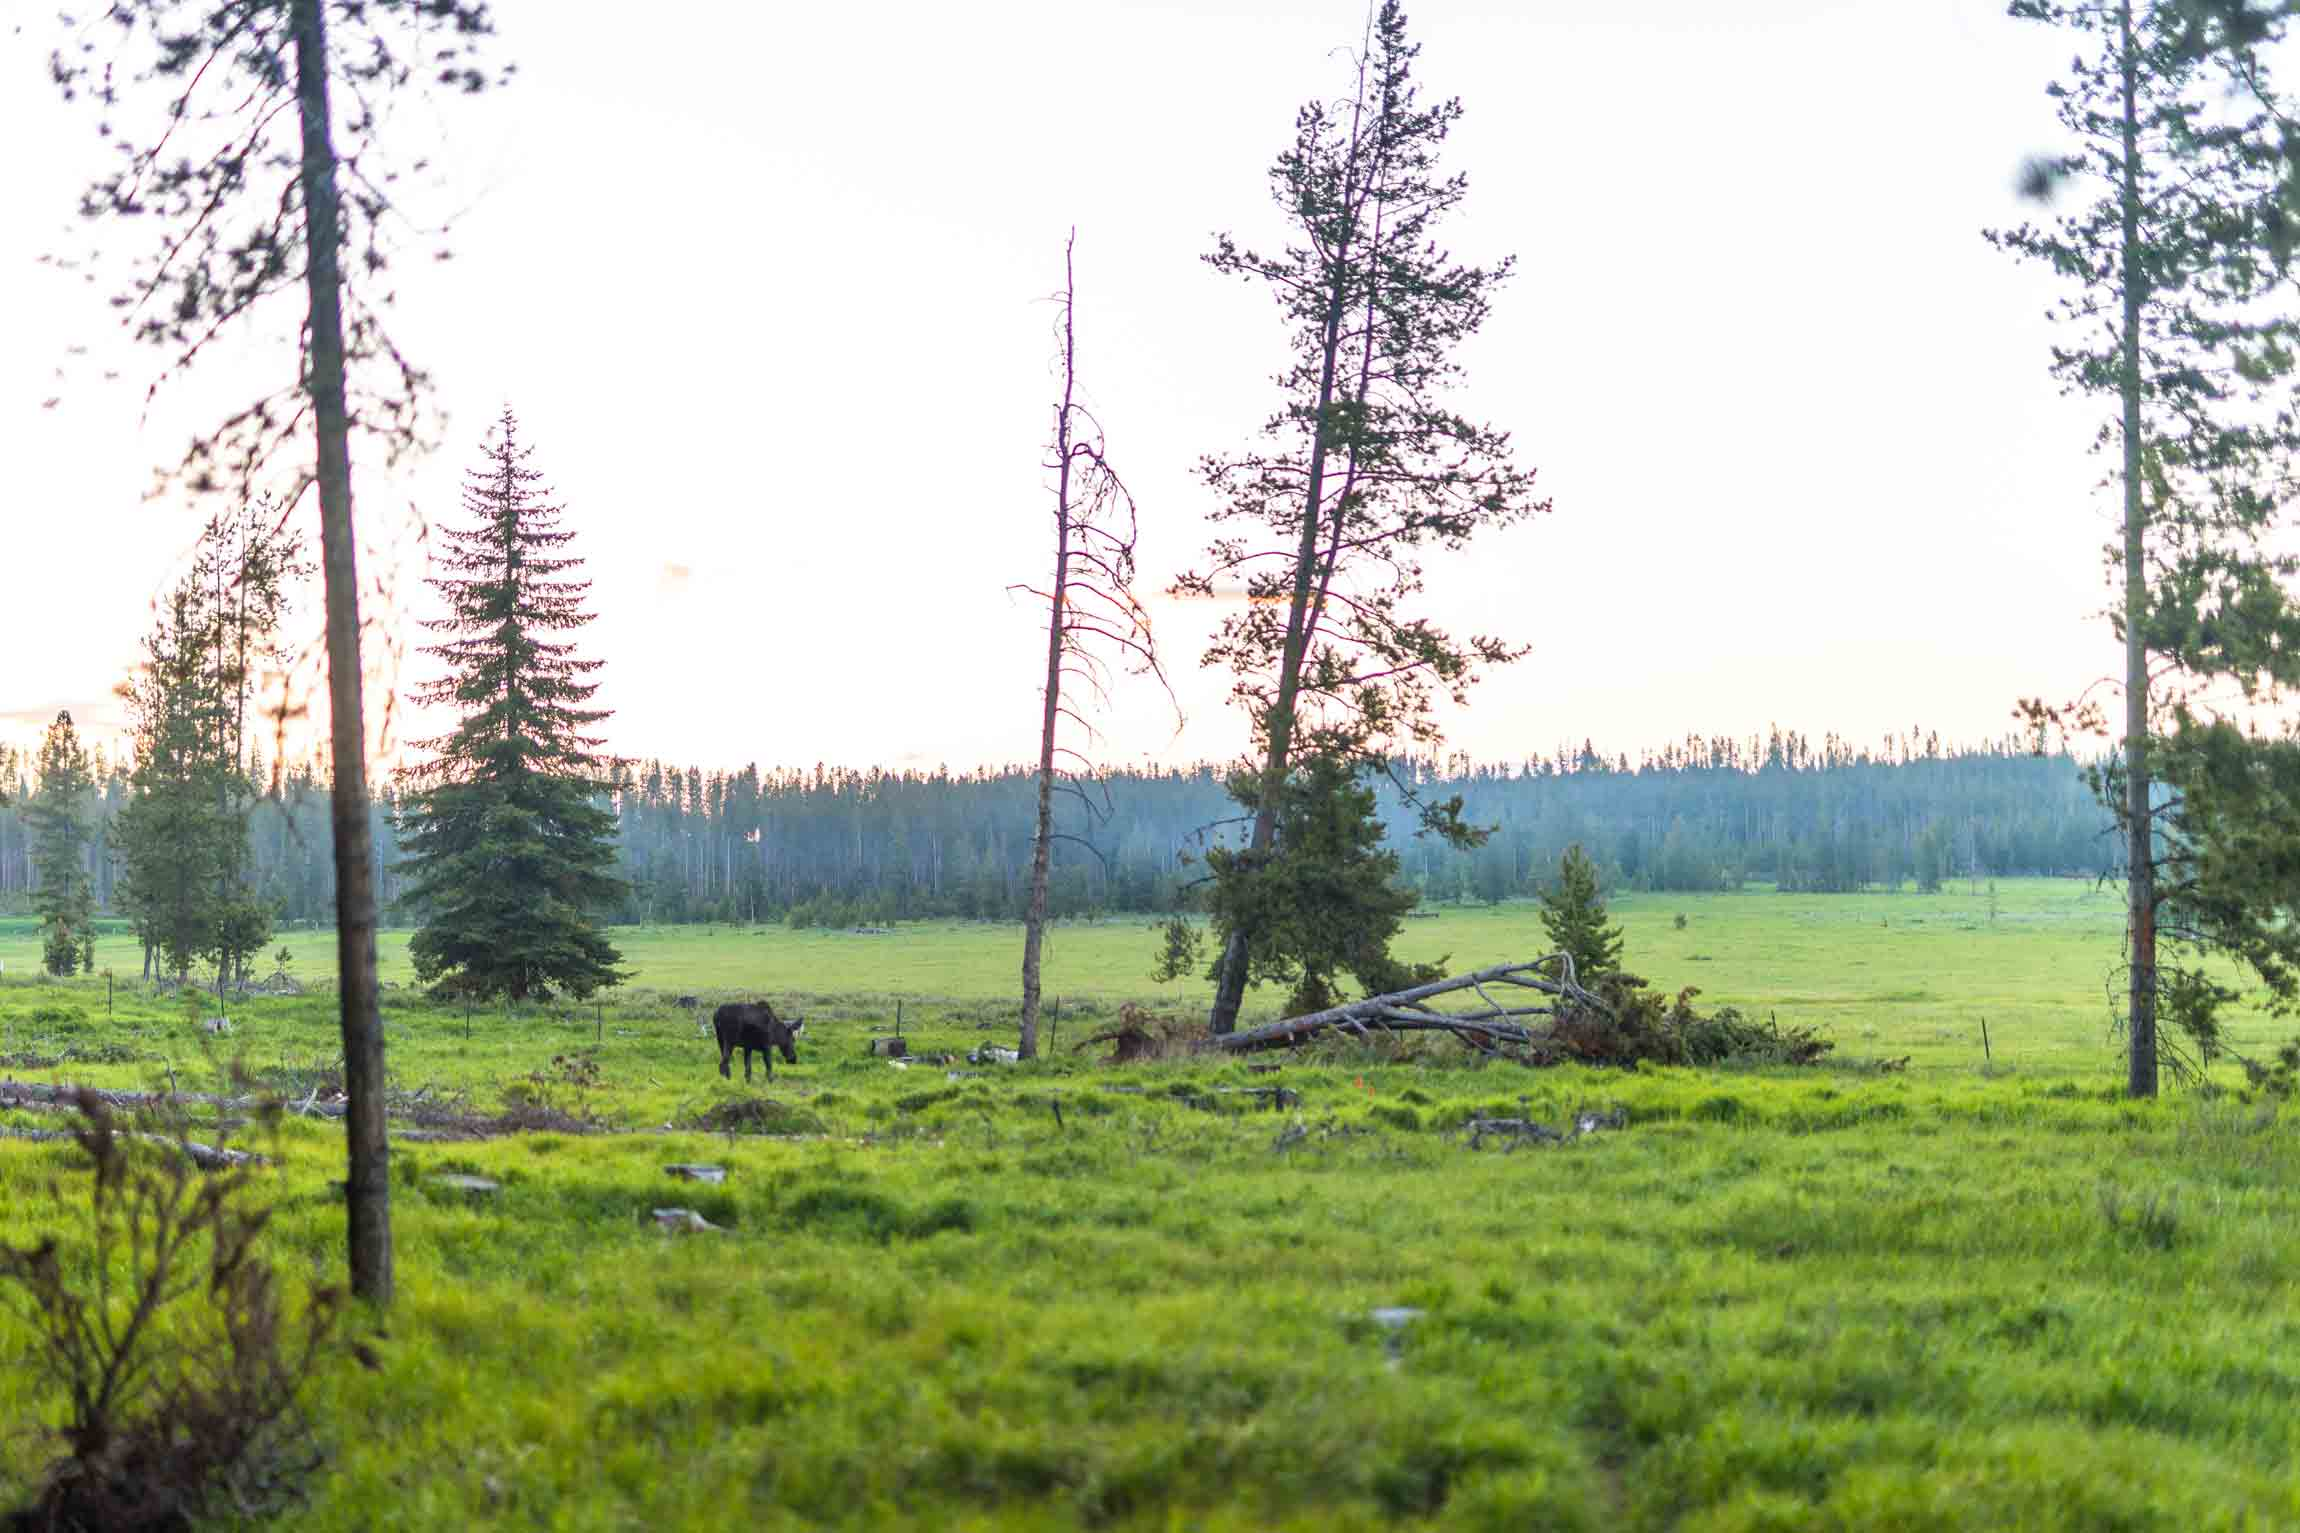 A moose in a meadow near Philipsburg, Montana.